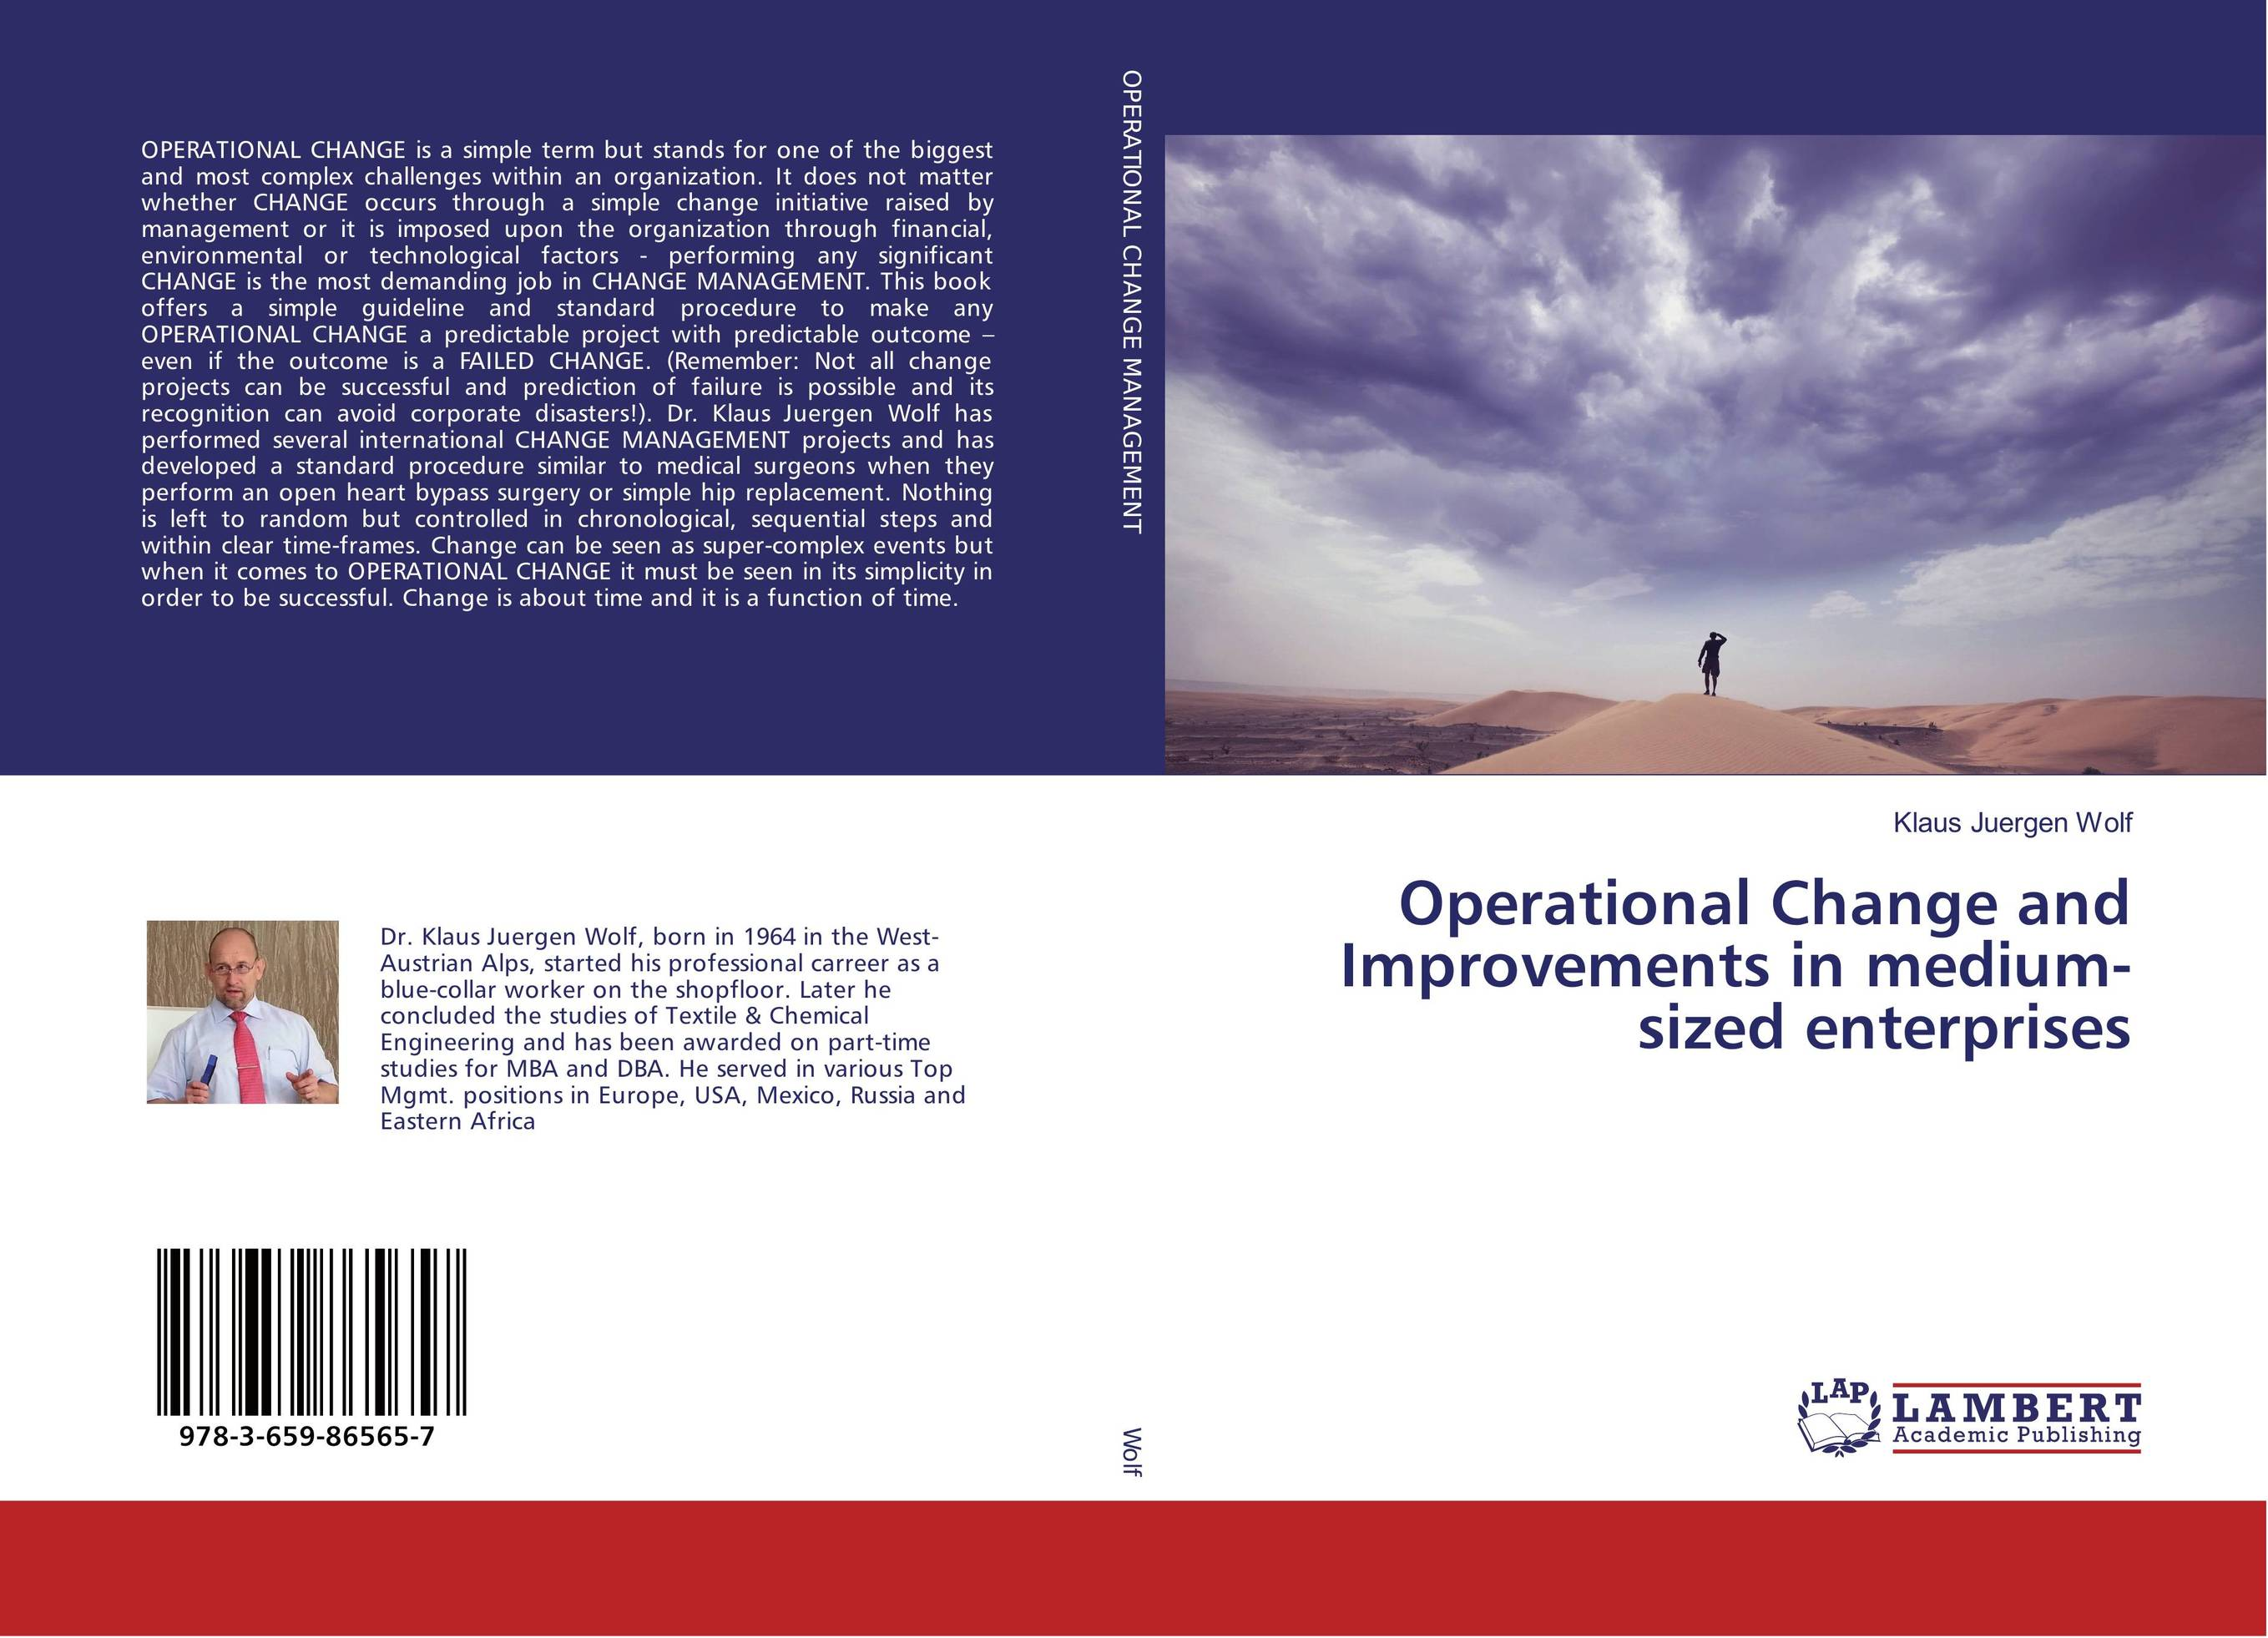 Operational Change and Improvements in medium-sized enterprises teach yourself change and crisis management